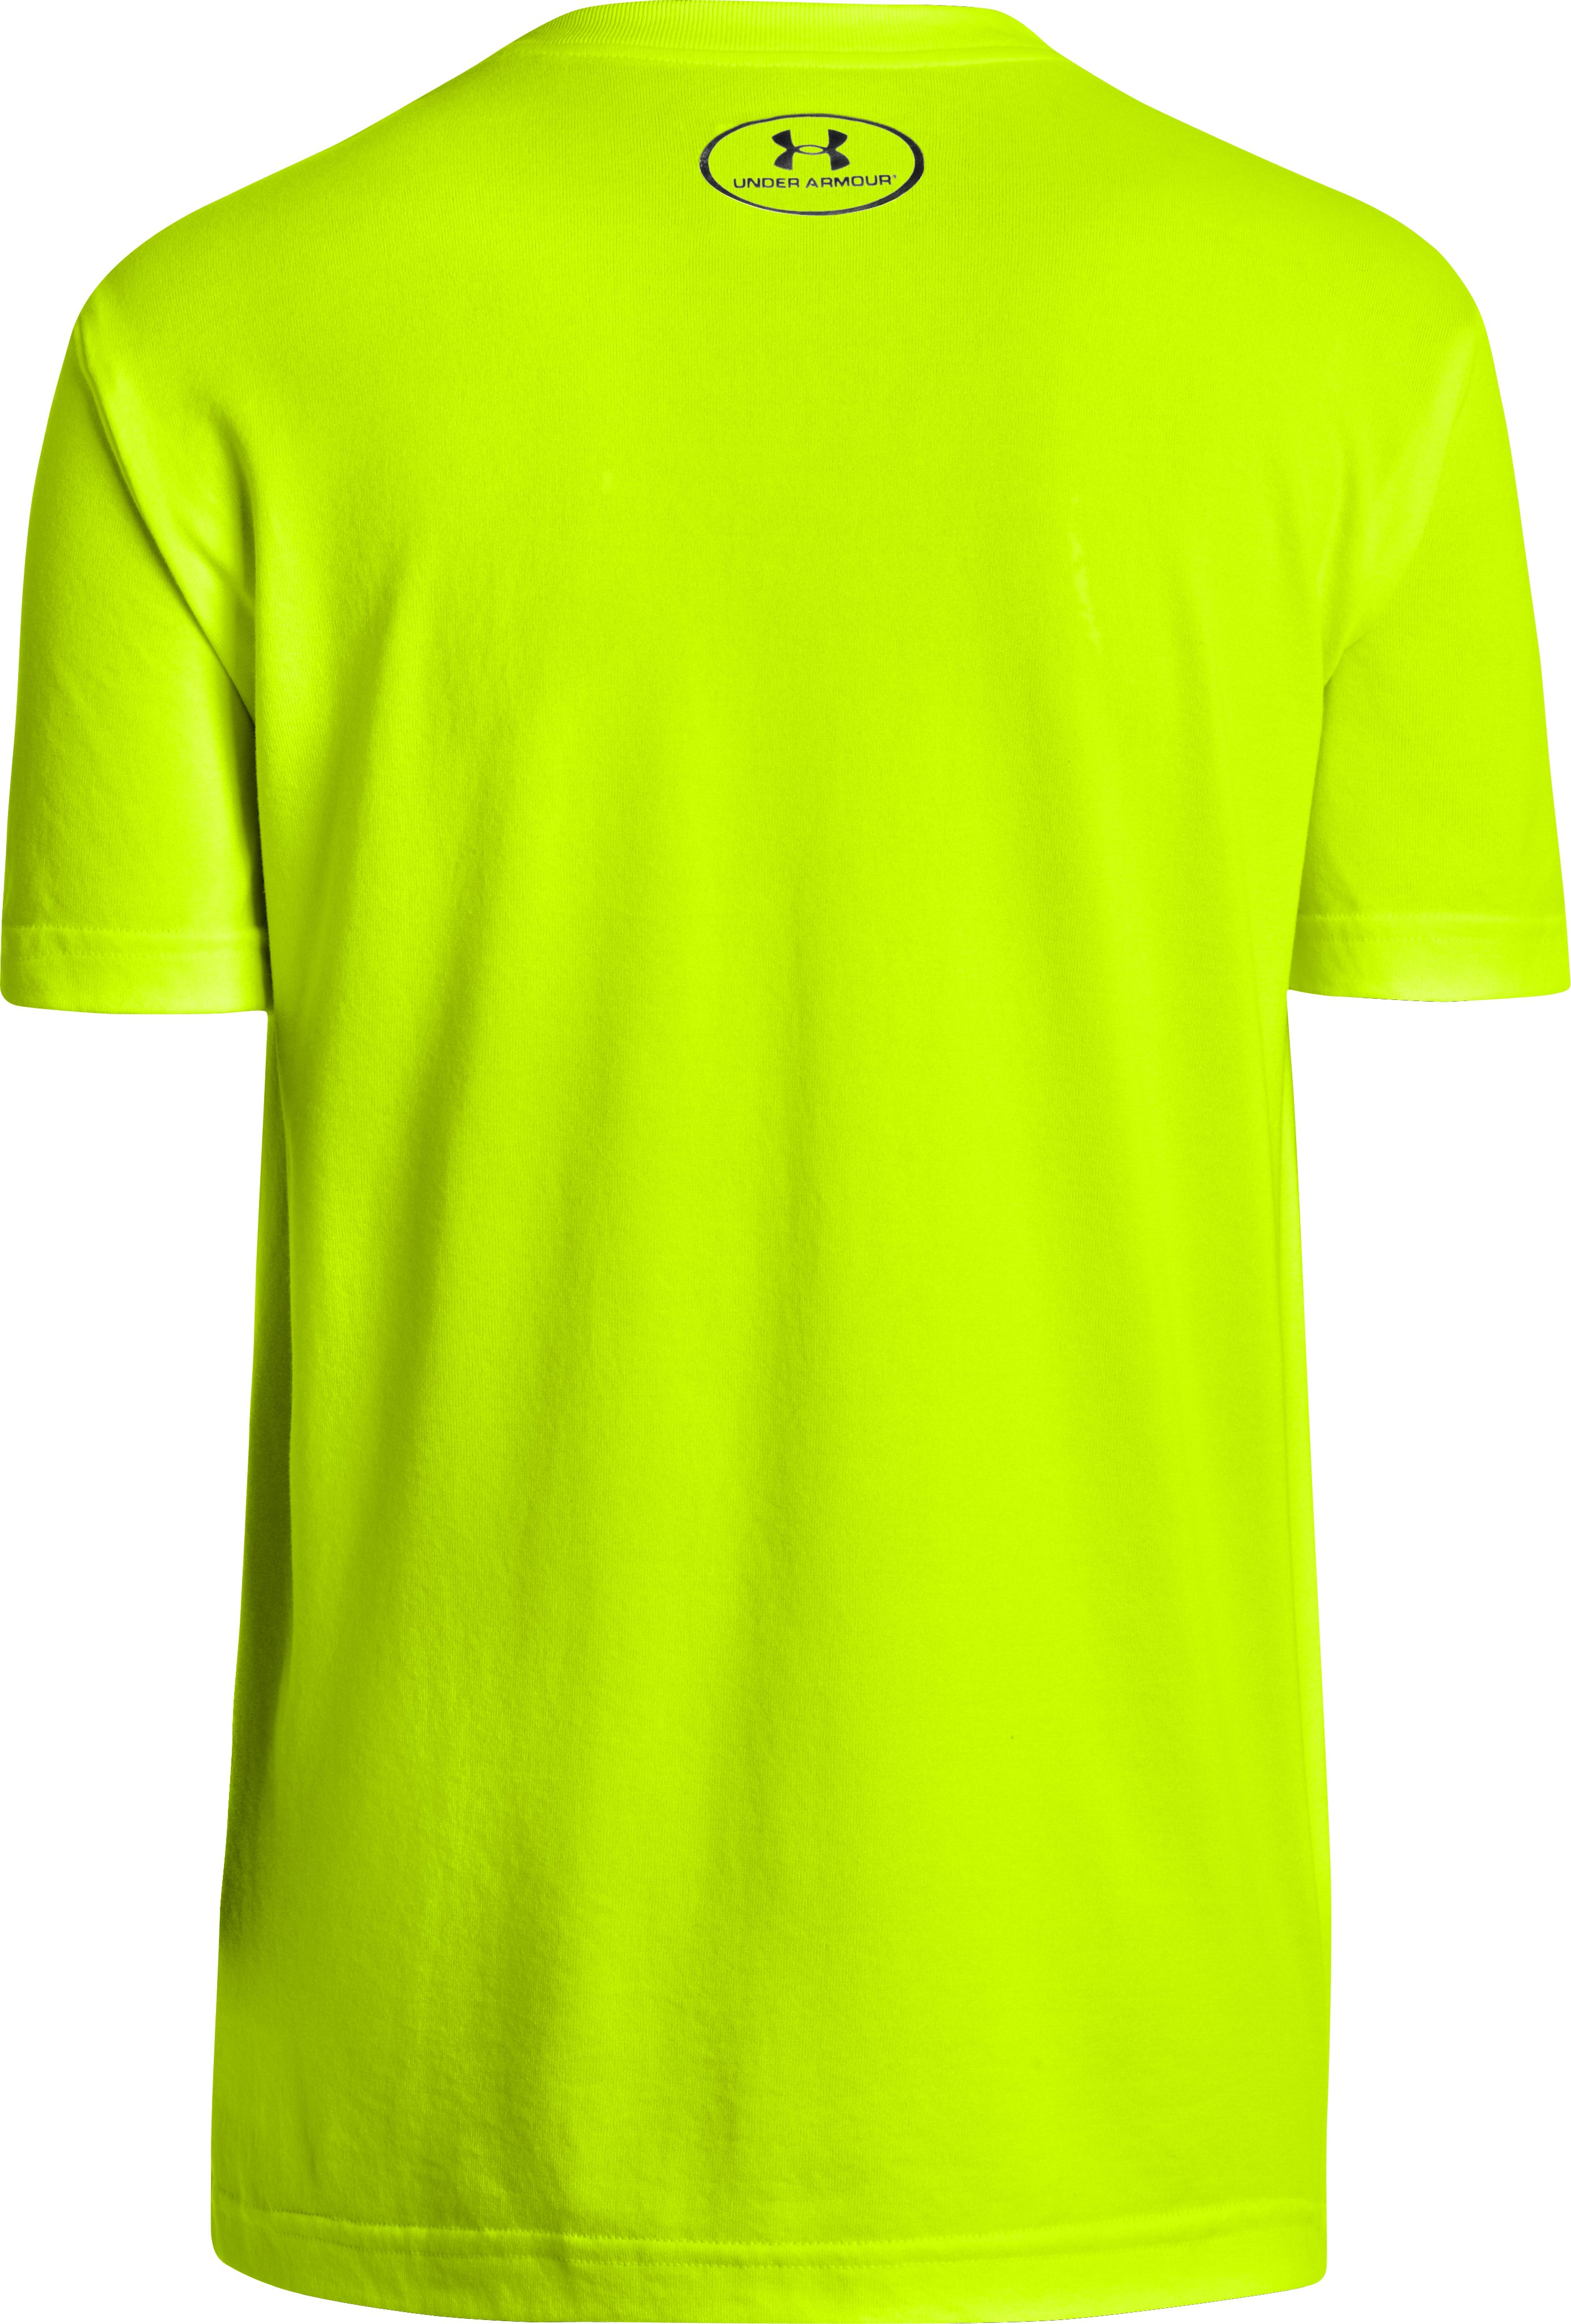 Boys' UA Dominate Everything T-Shirt, High-Vis Yellow, undefined